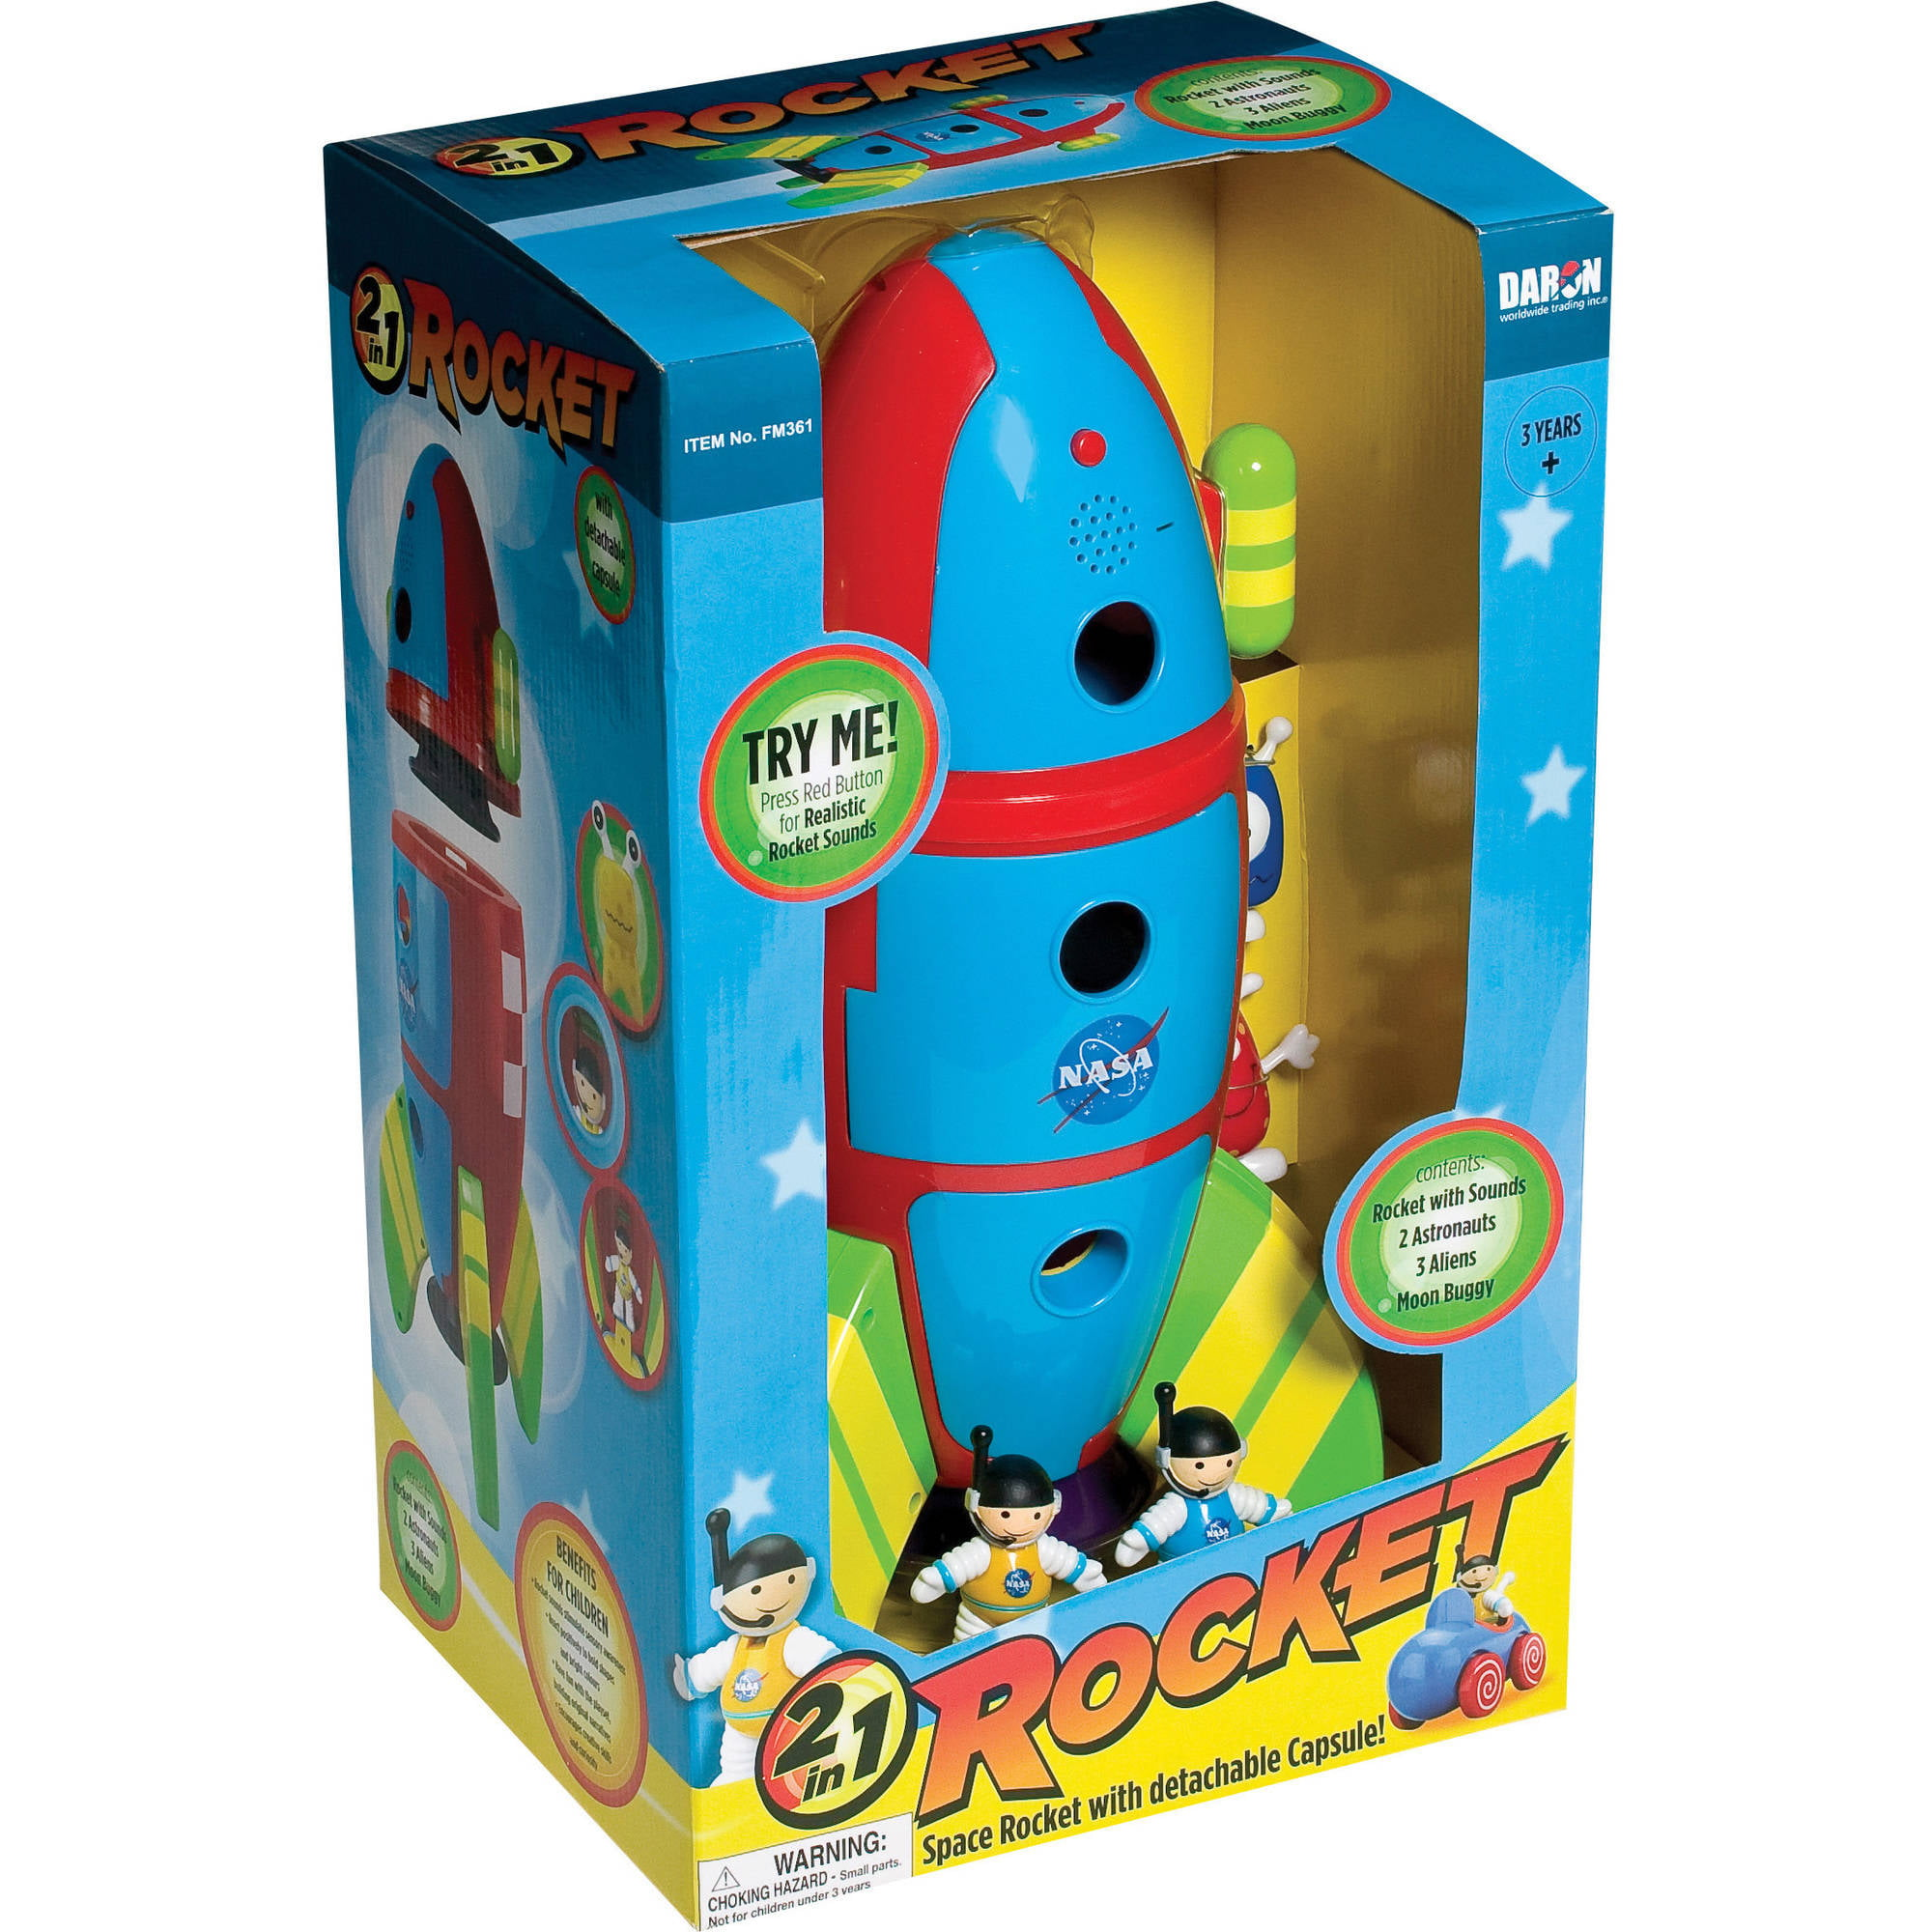 Daron 2-in-1 Space Rocket with Detachable Capsule by Daron